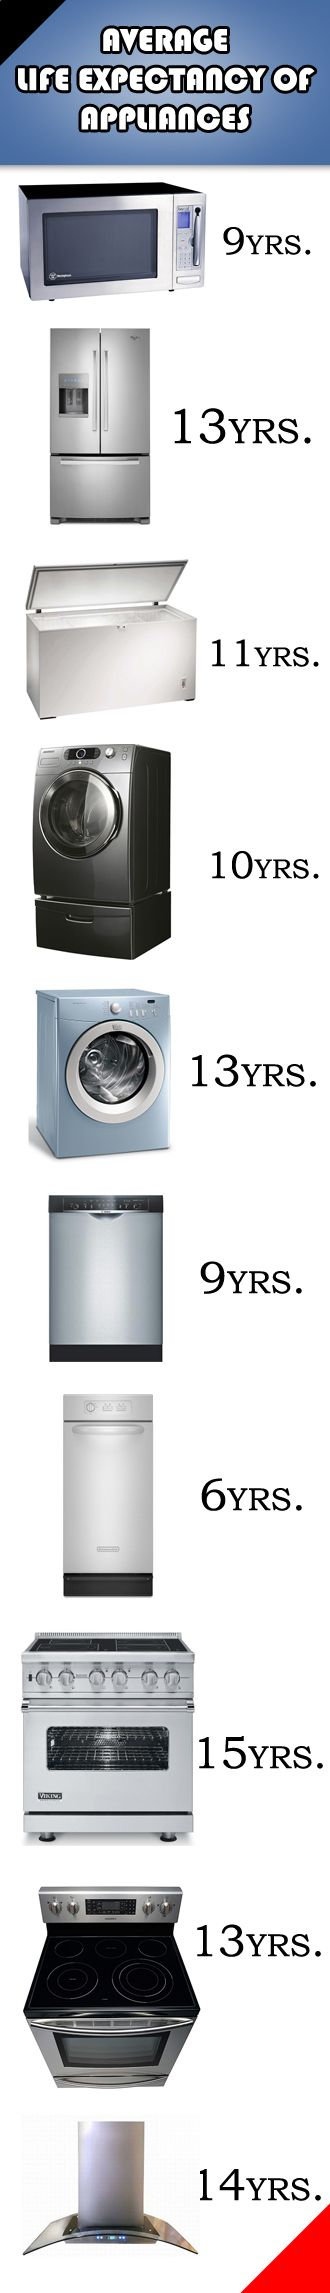 Life Expectancy of Appliances (With images) Appliance